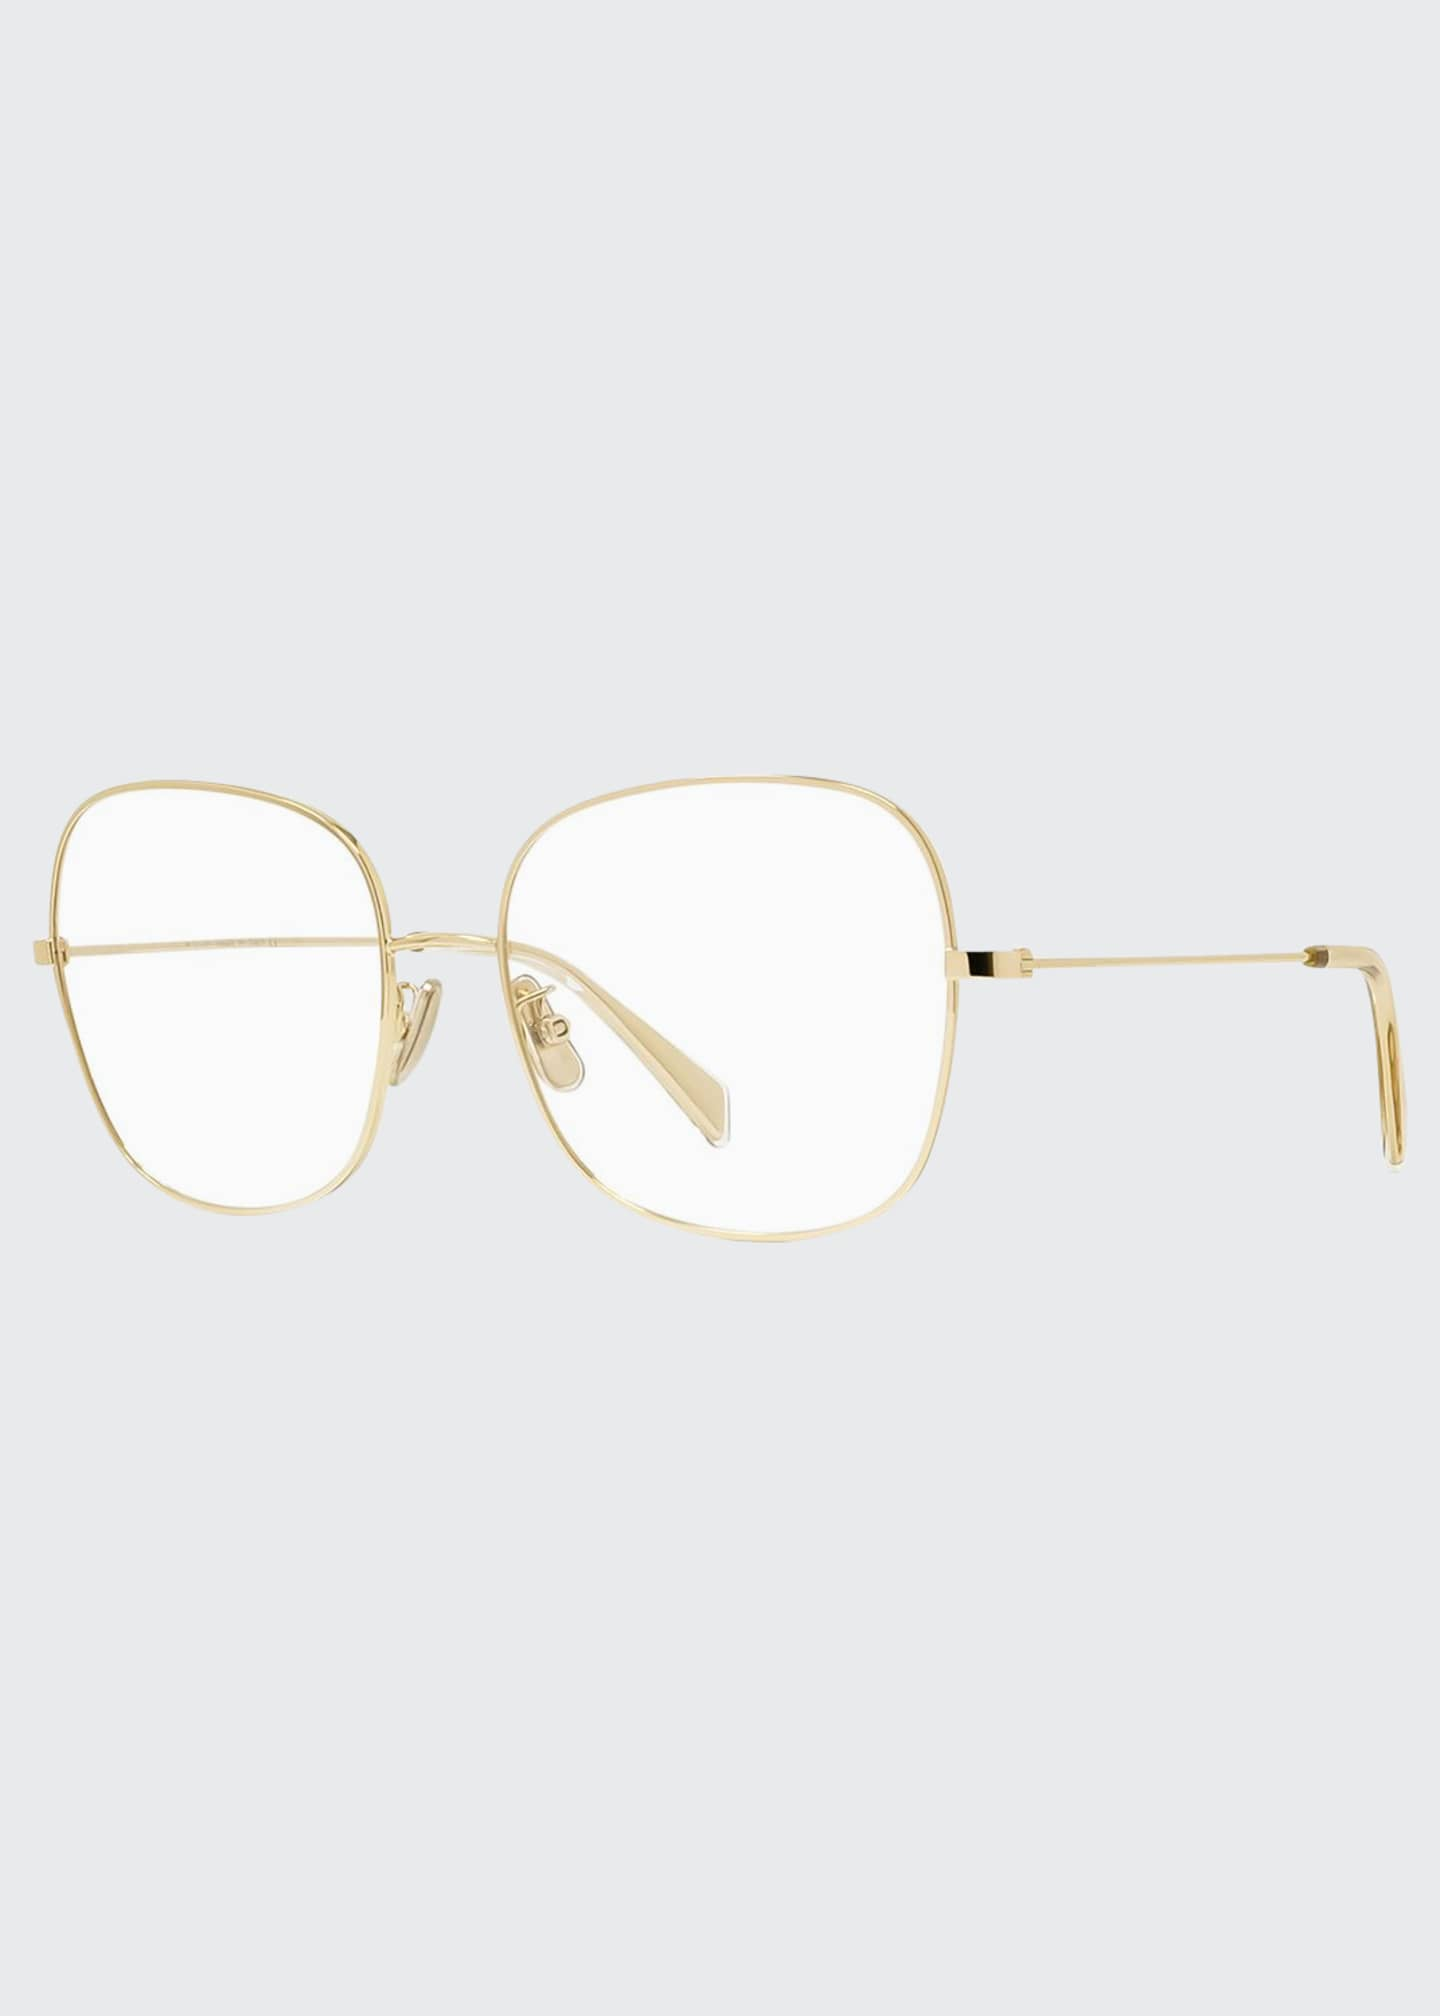 Celine Square Metal Optical Frames